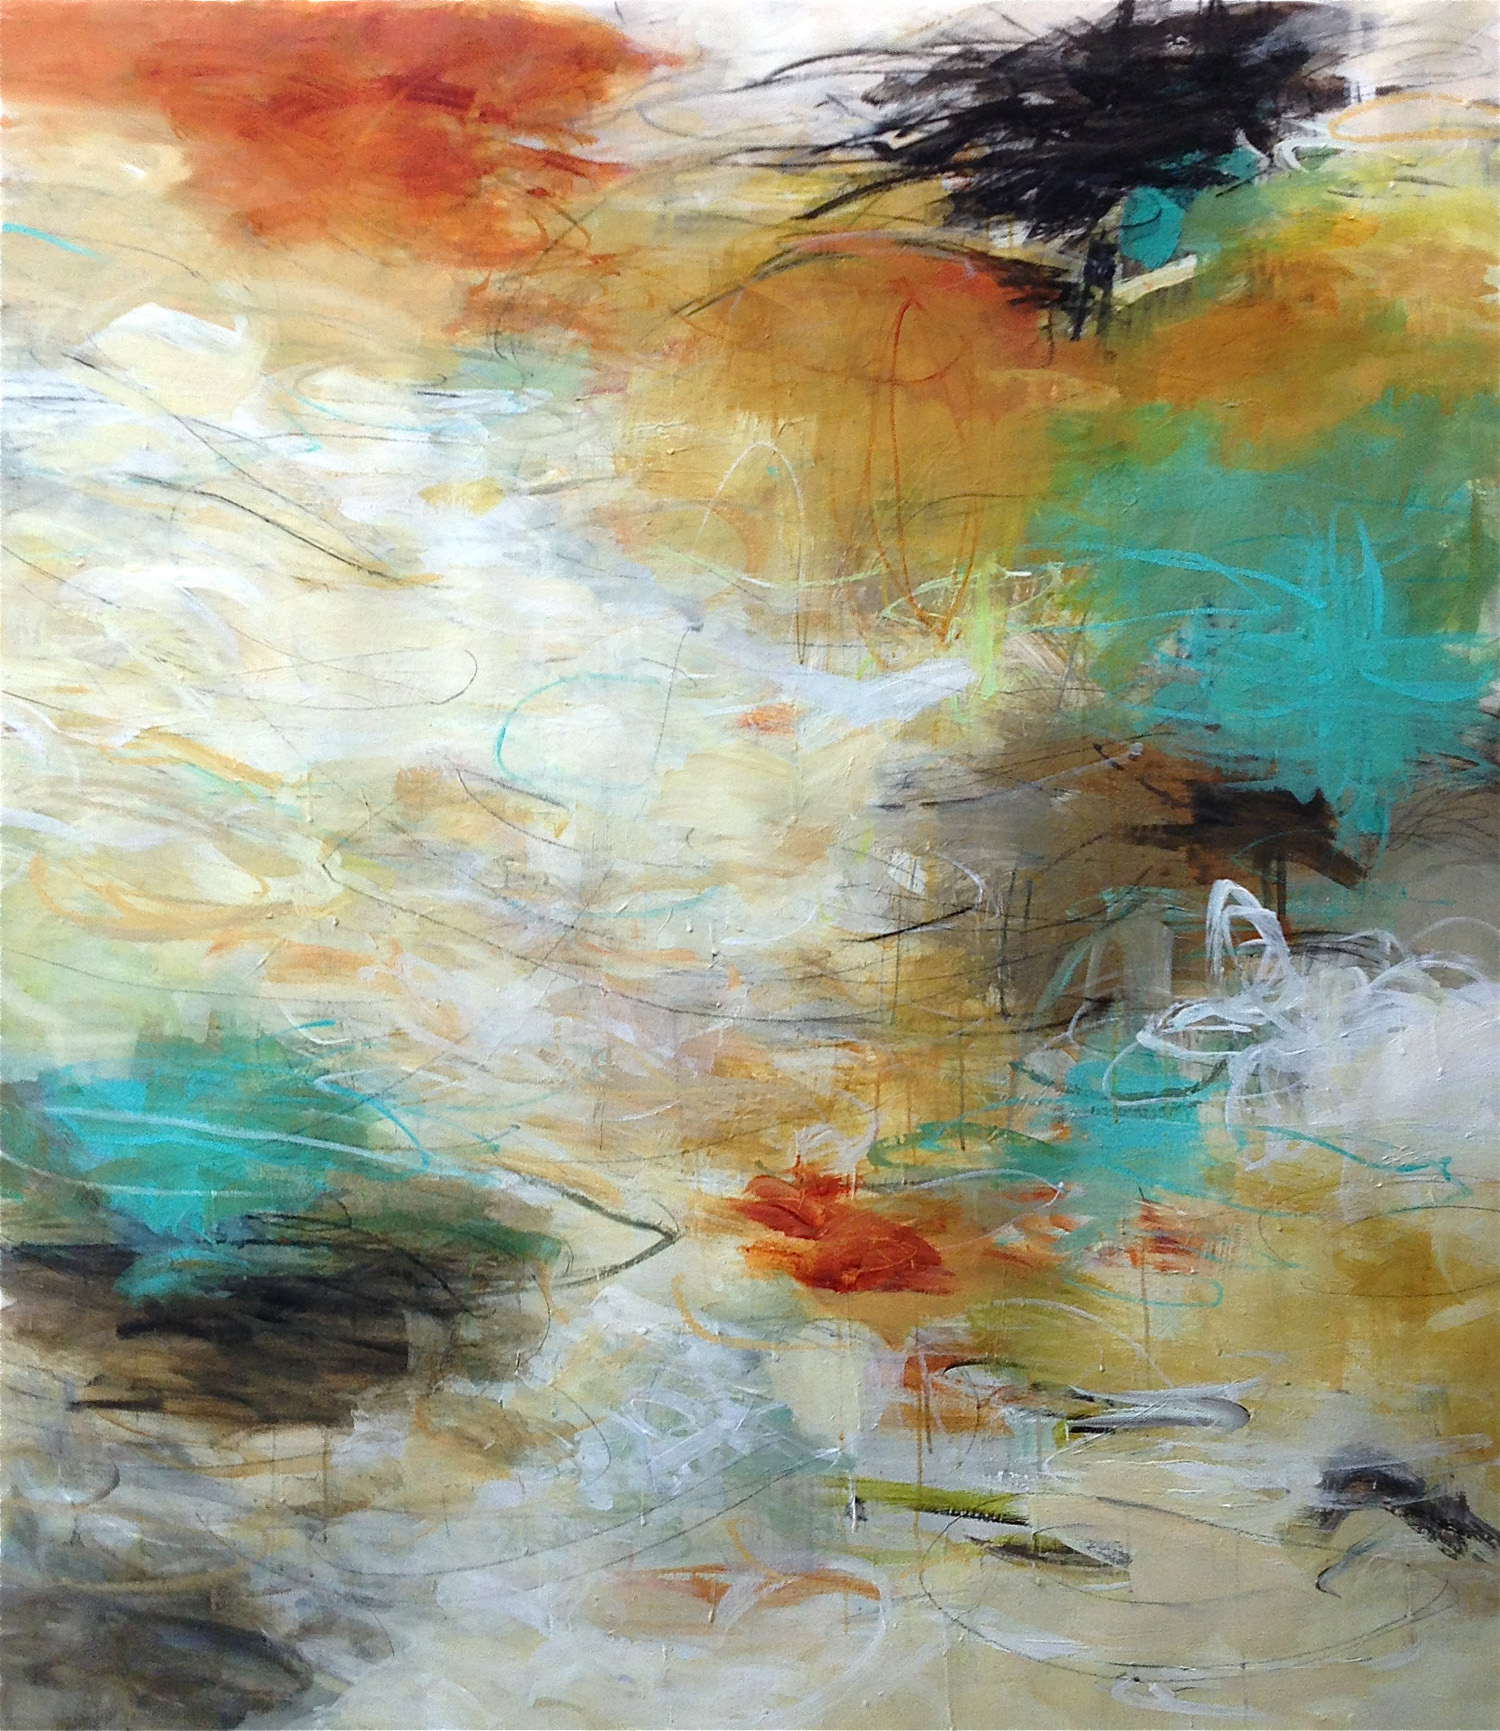 "MEANDER 60"" x 48"" acrylic/mixed media on canvas"